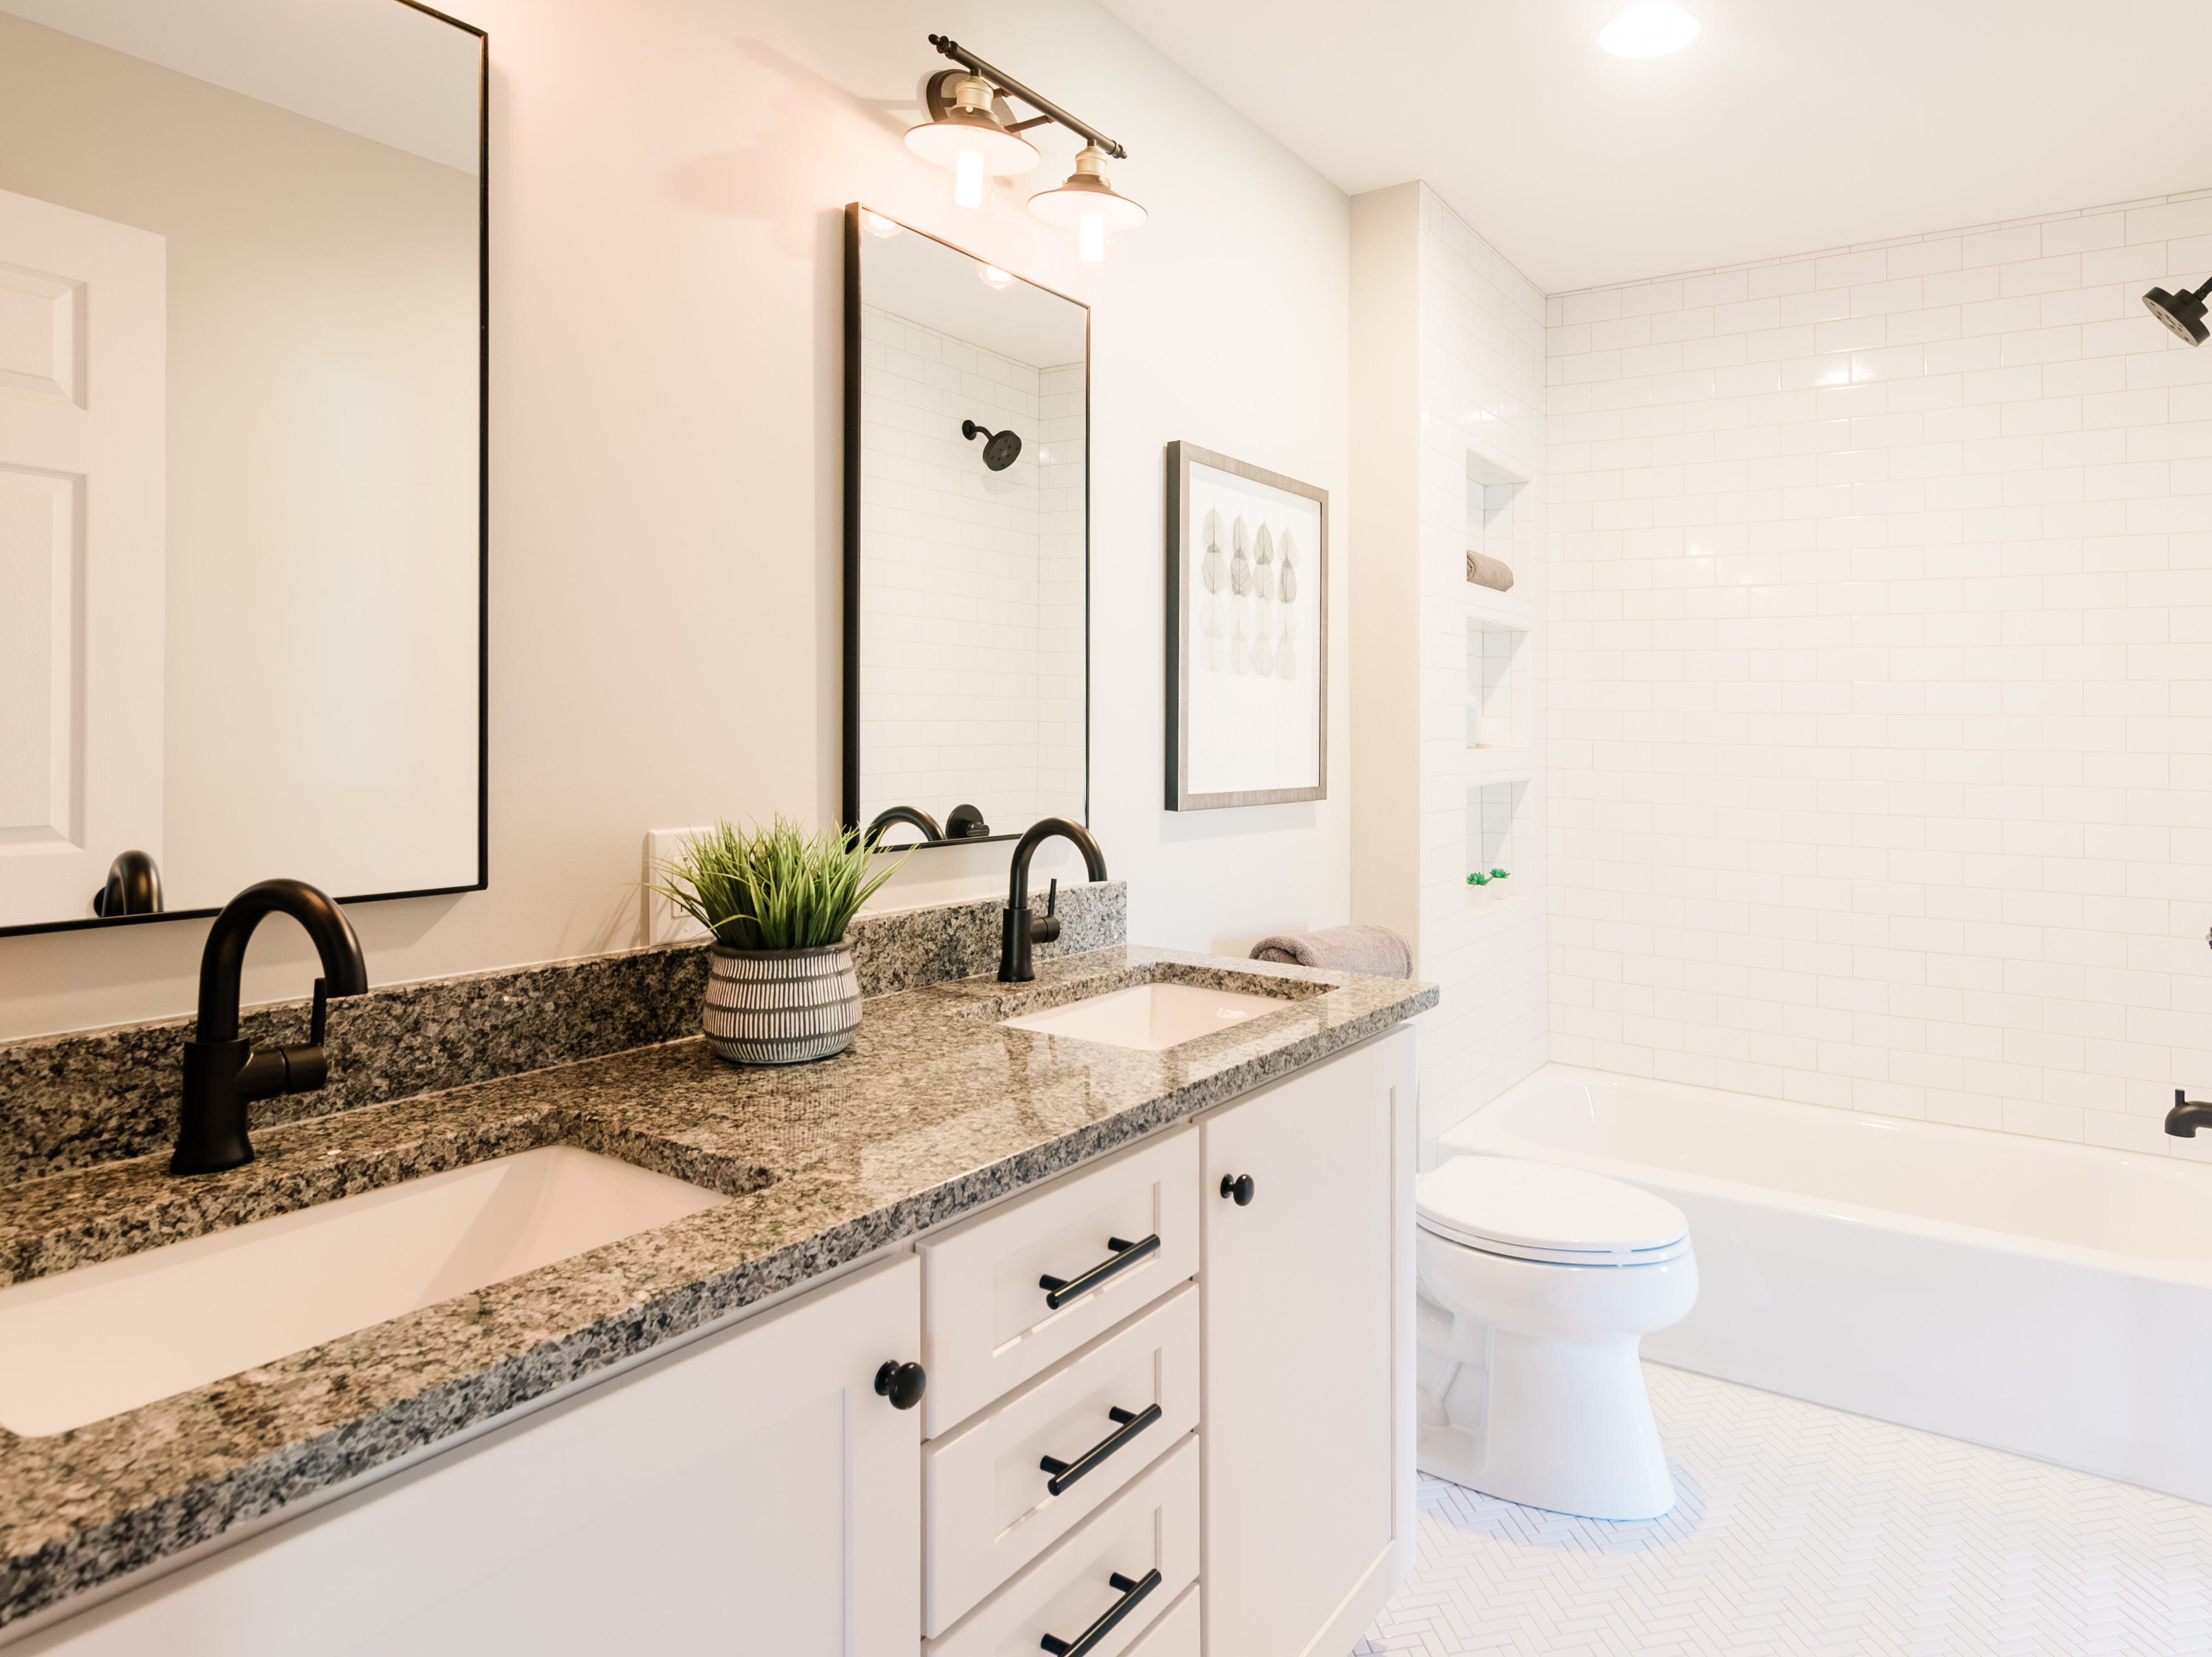 AFTER: When the home at 405 Oakvale was remodeled, designers at Design Hive re-imagined the space, opened it up and made it feel like a new home master bath.